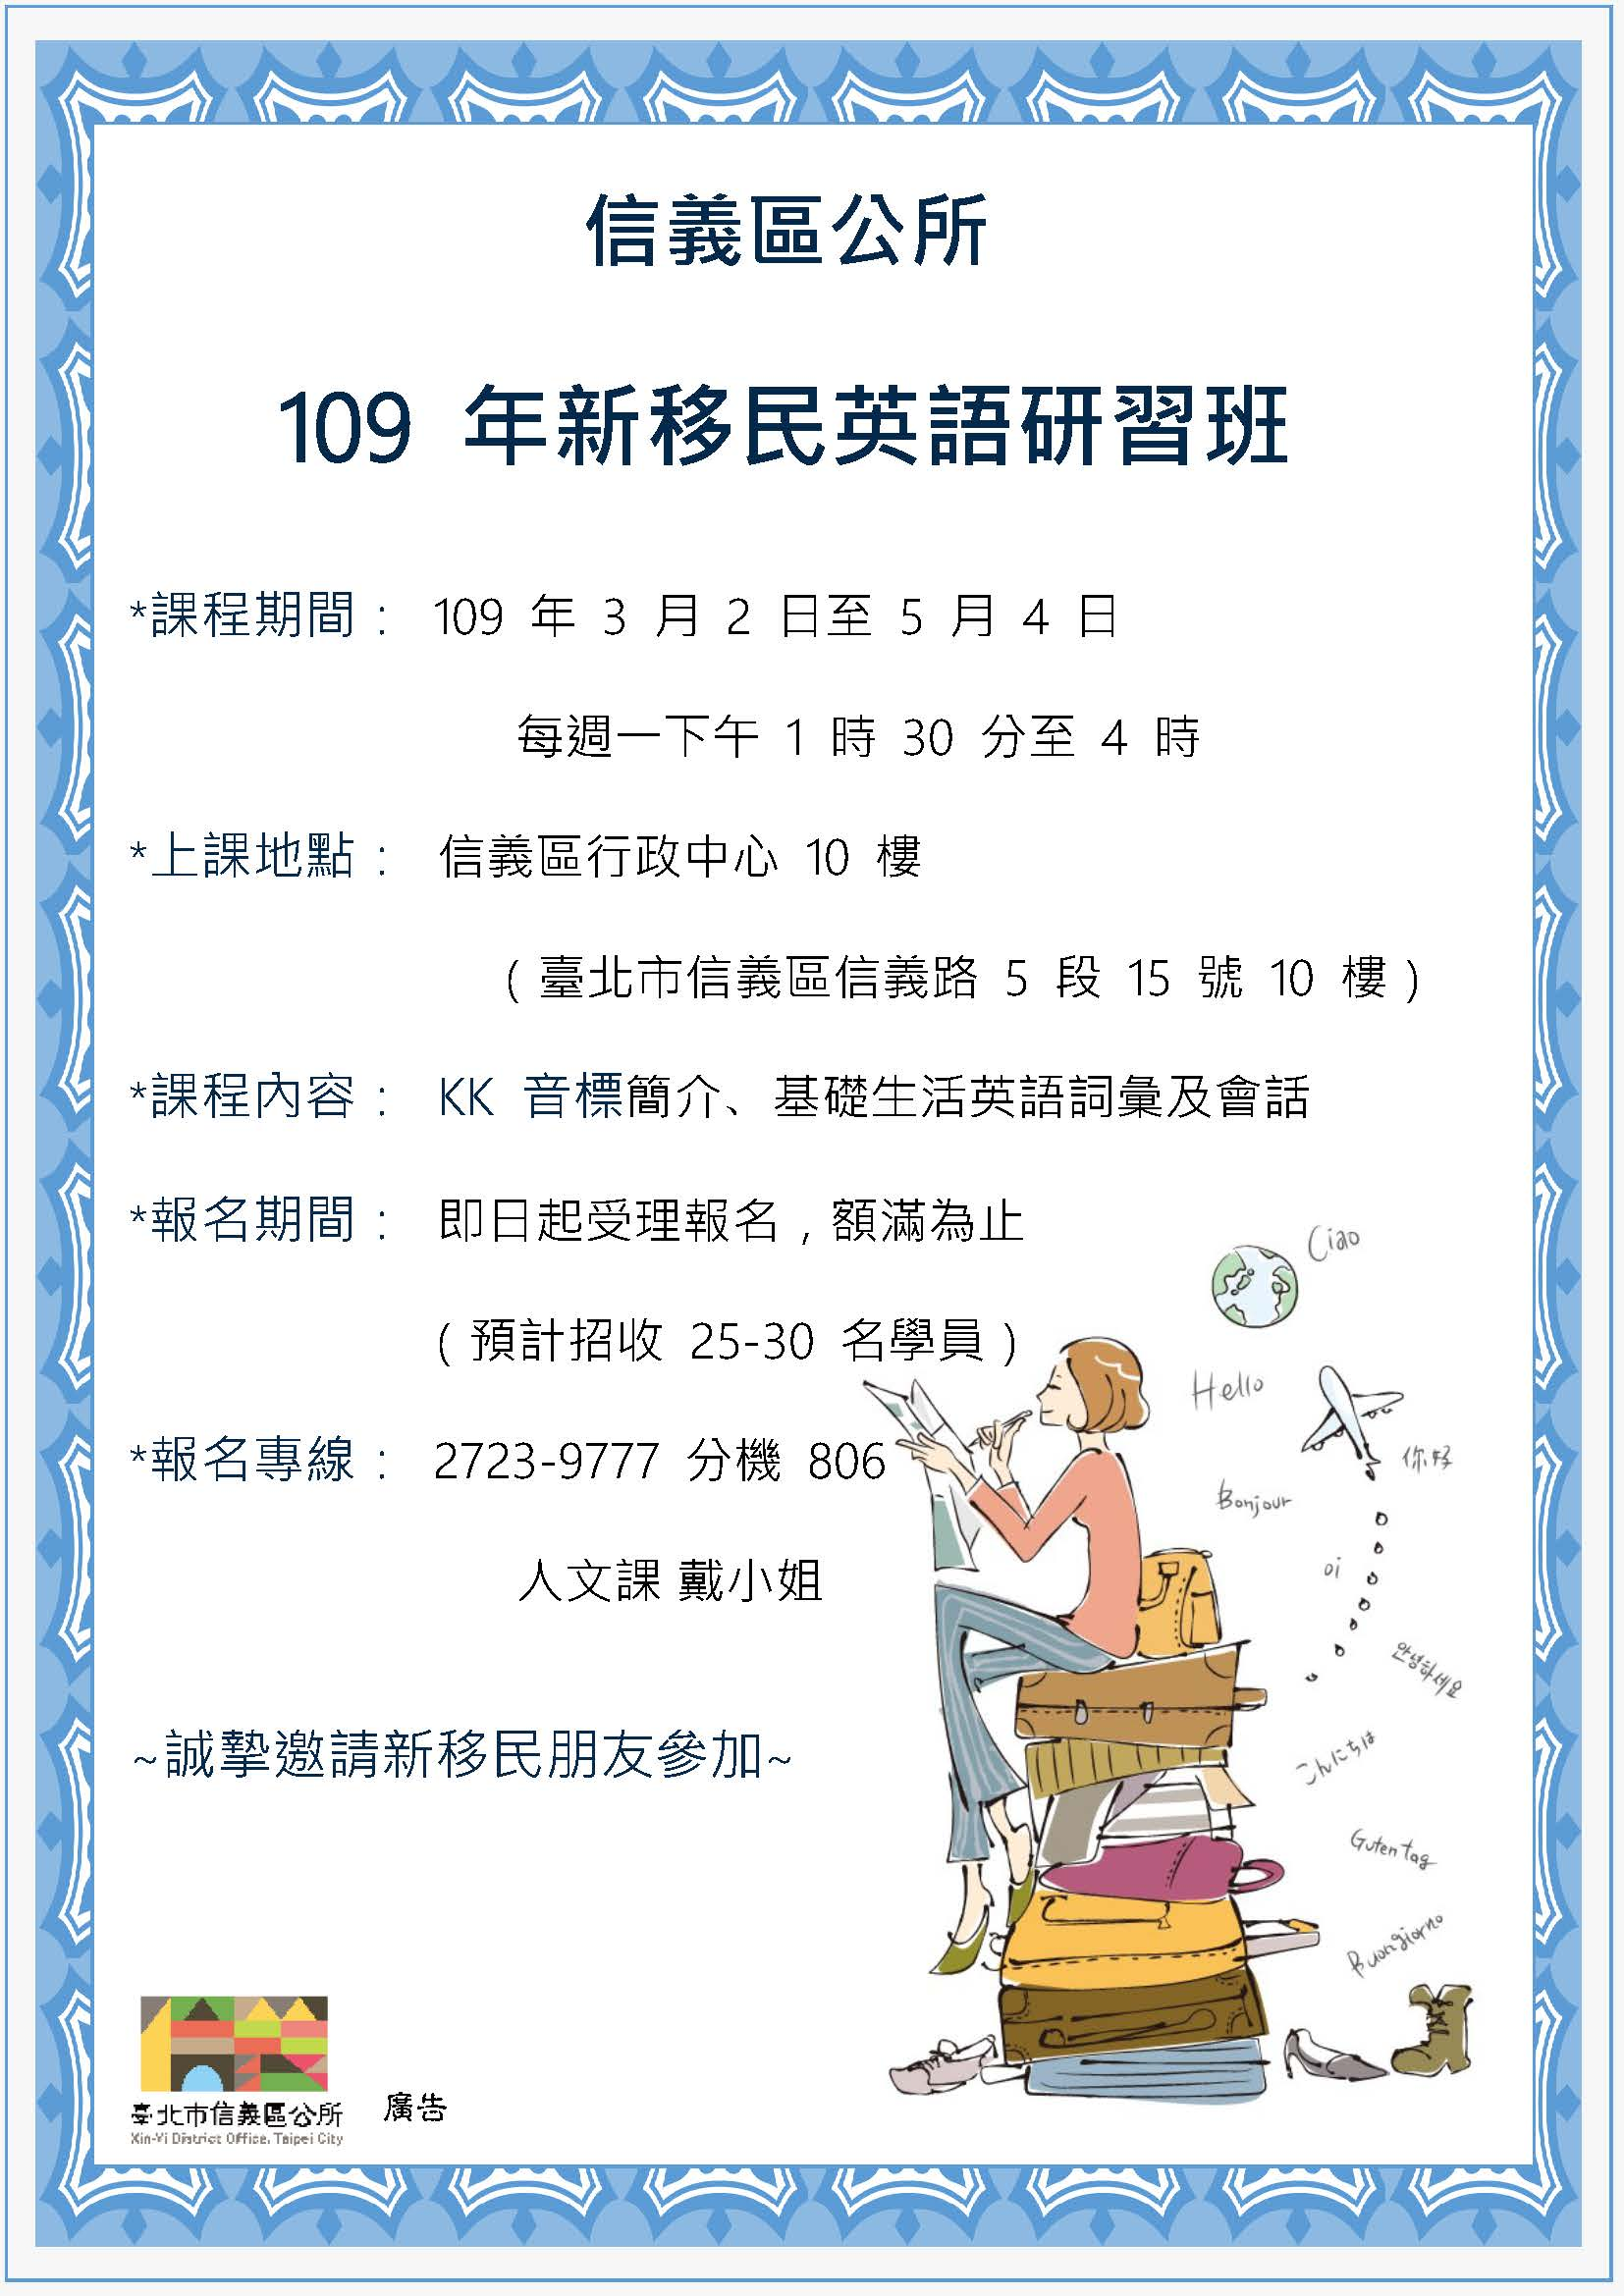 Xinyi District Office to host 2020 New Immigrant English Seminar from Mar. 2 to May 5, 2020 (2-1)